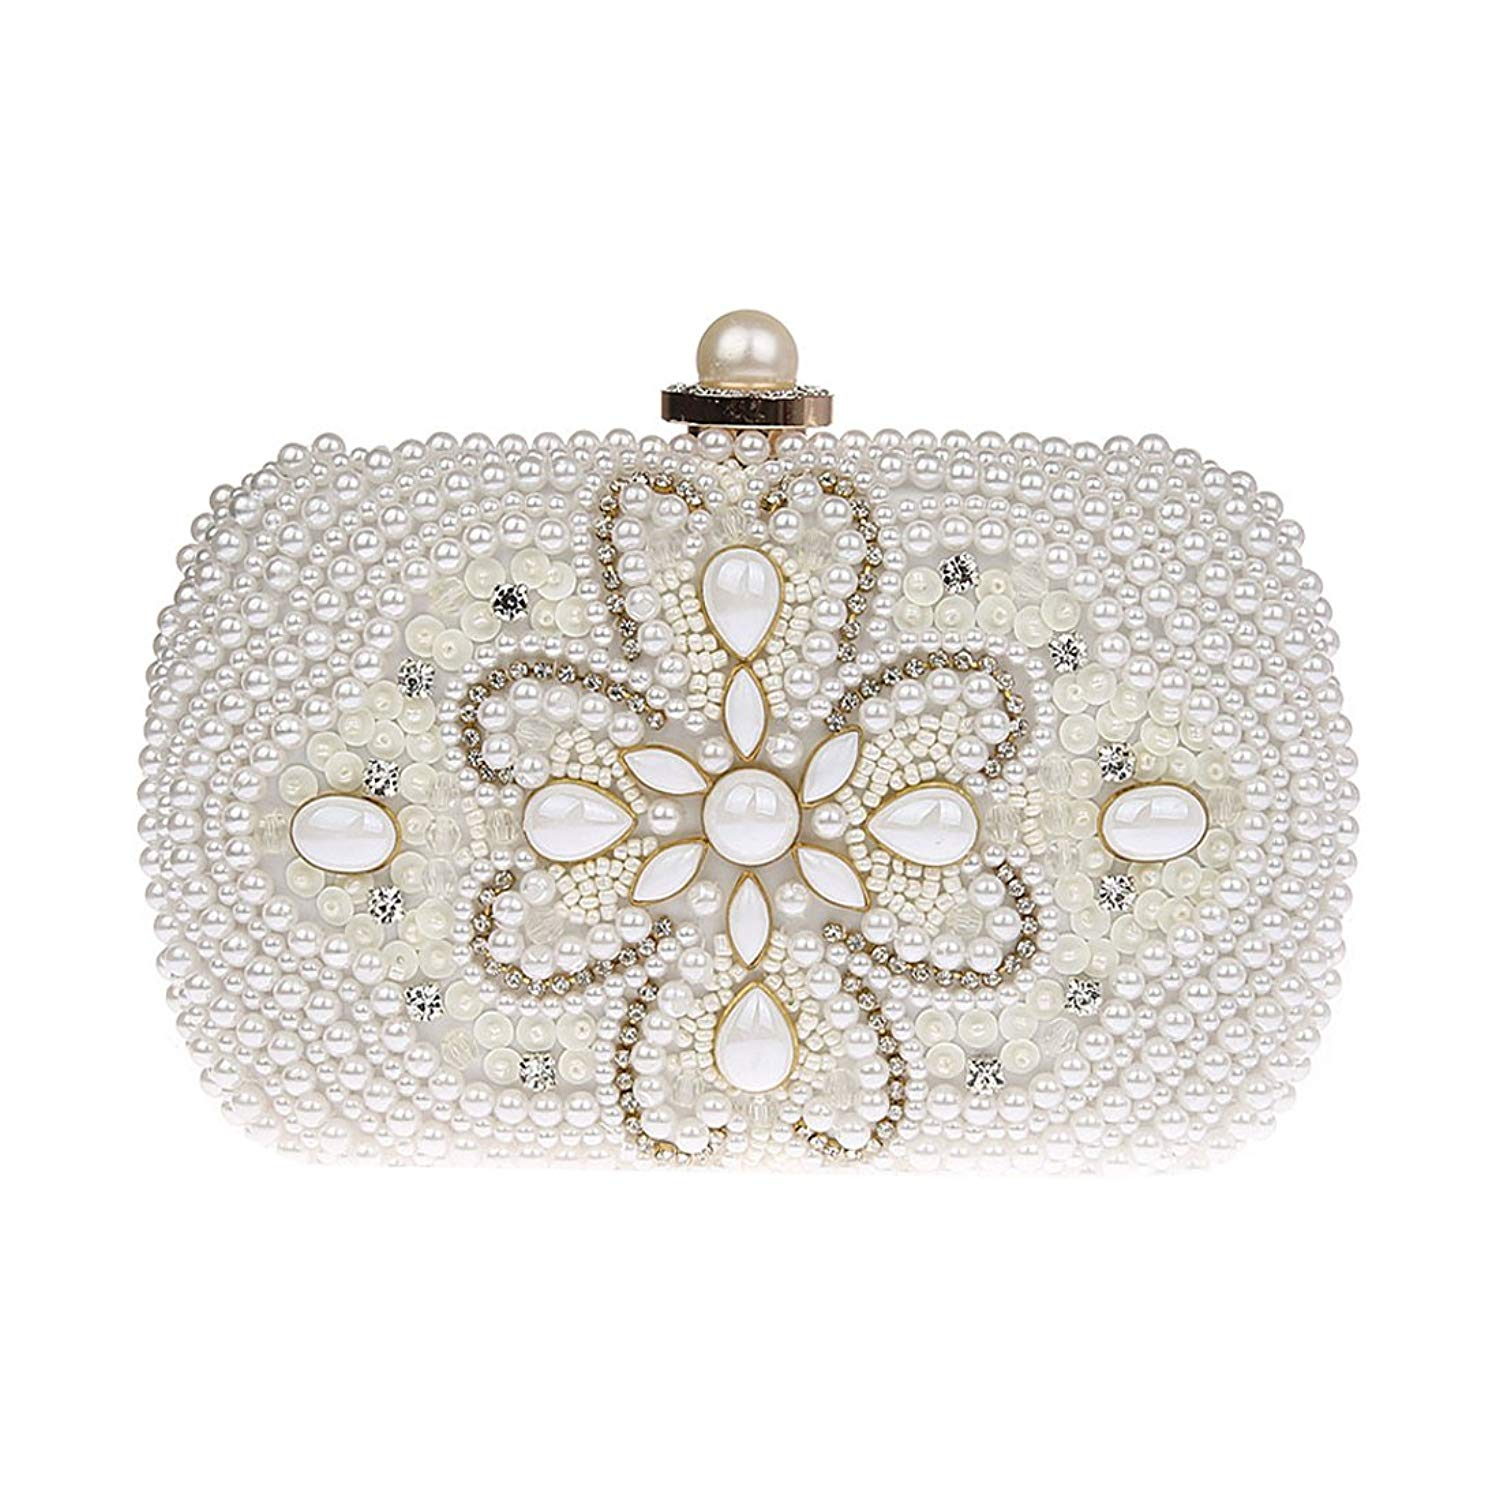 75ebc12905f Get Quotations · KAXIDY Flower Evening Bag Elegant Clutch Bags Wedding  Clutch Bridal Prom Party Purse Bags